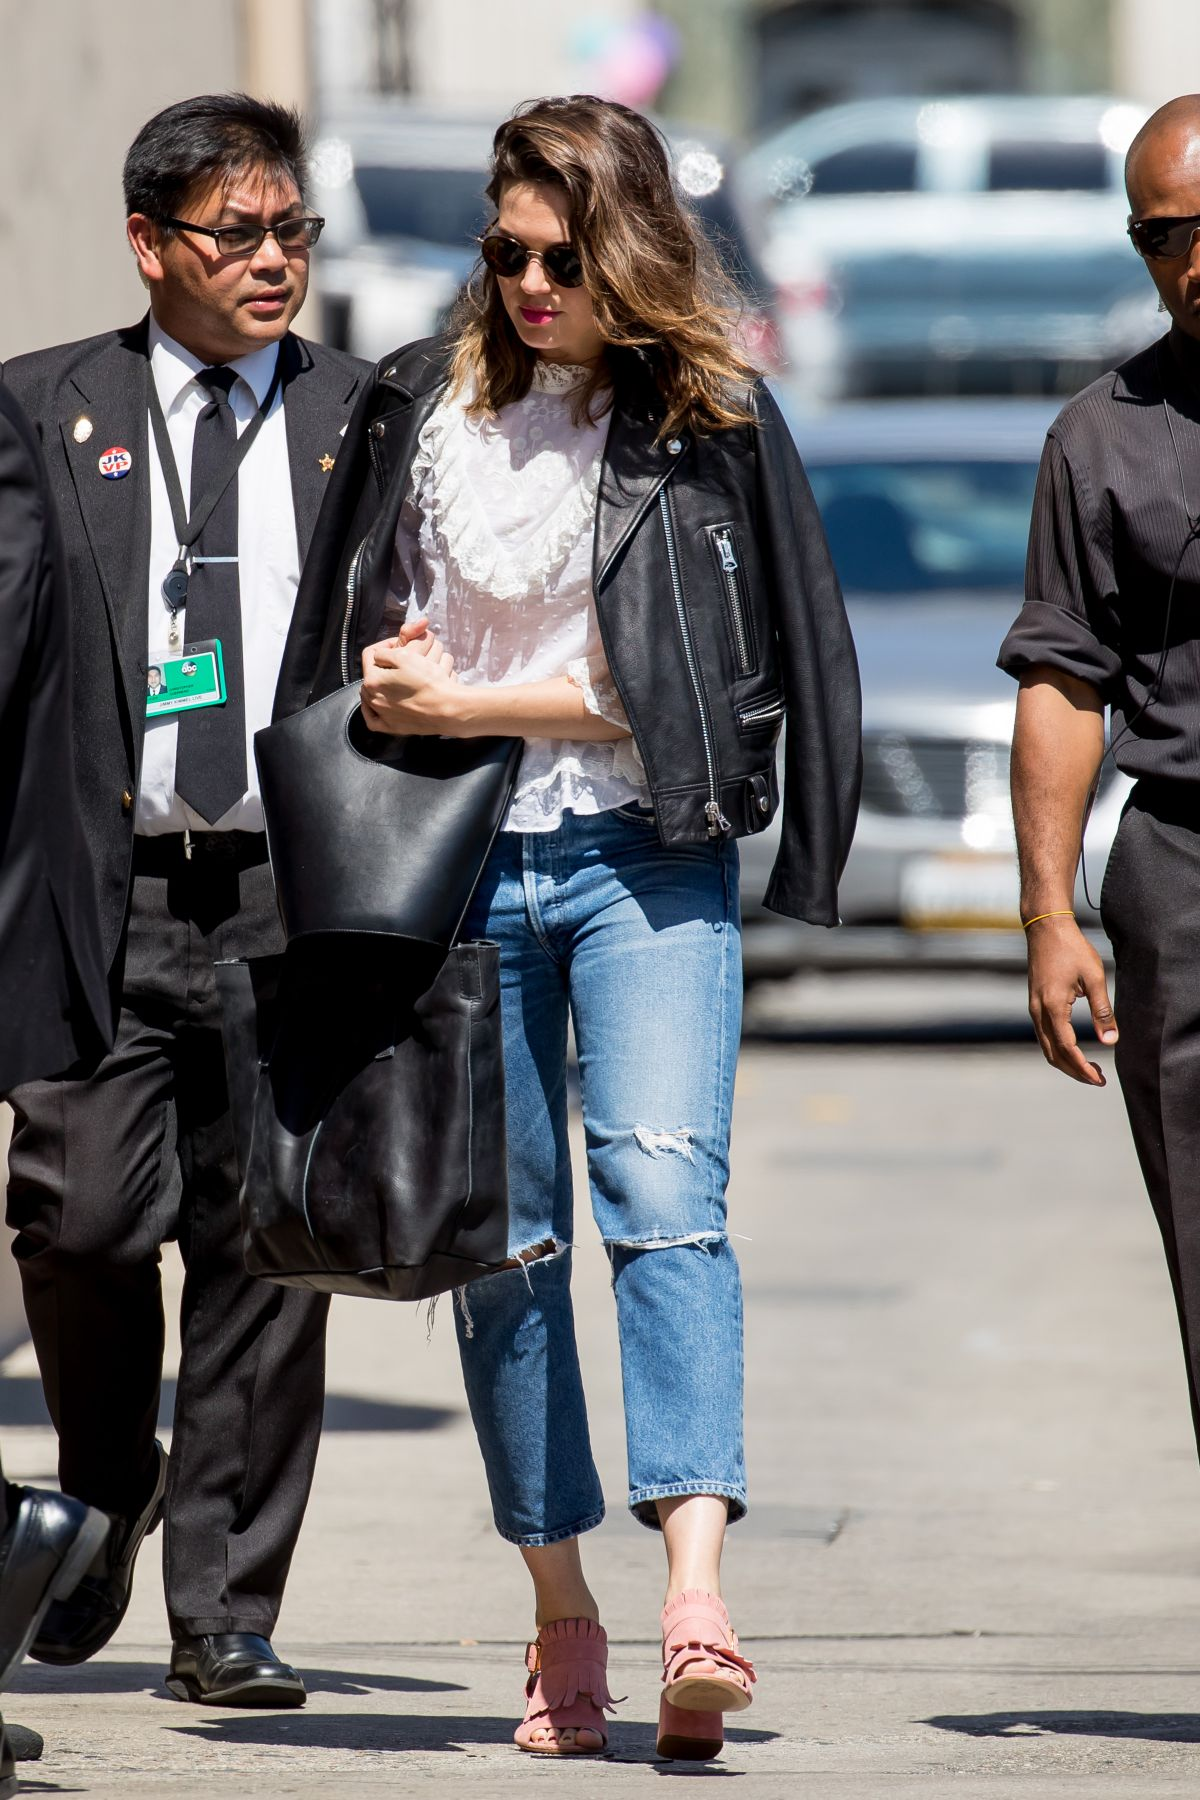 Mandy Moore At 'Jimmy Kimmel Live' in Hollywood   mandy-moore-at-jimmy-kimmel-live-in-hollywood-_9